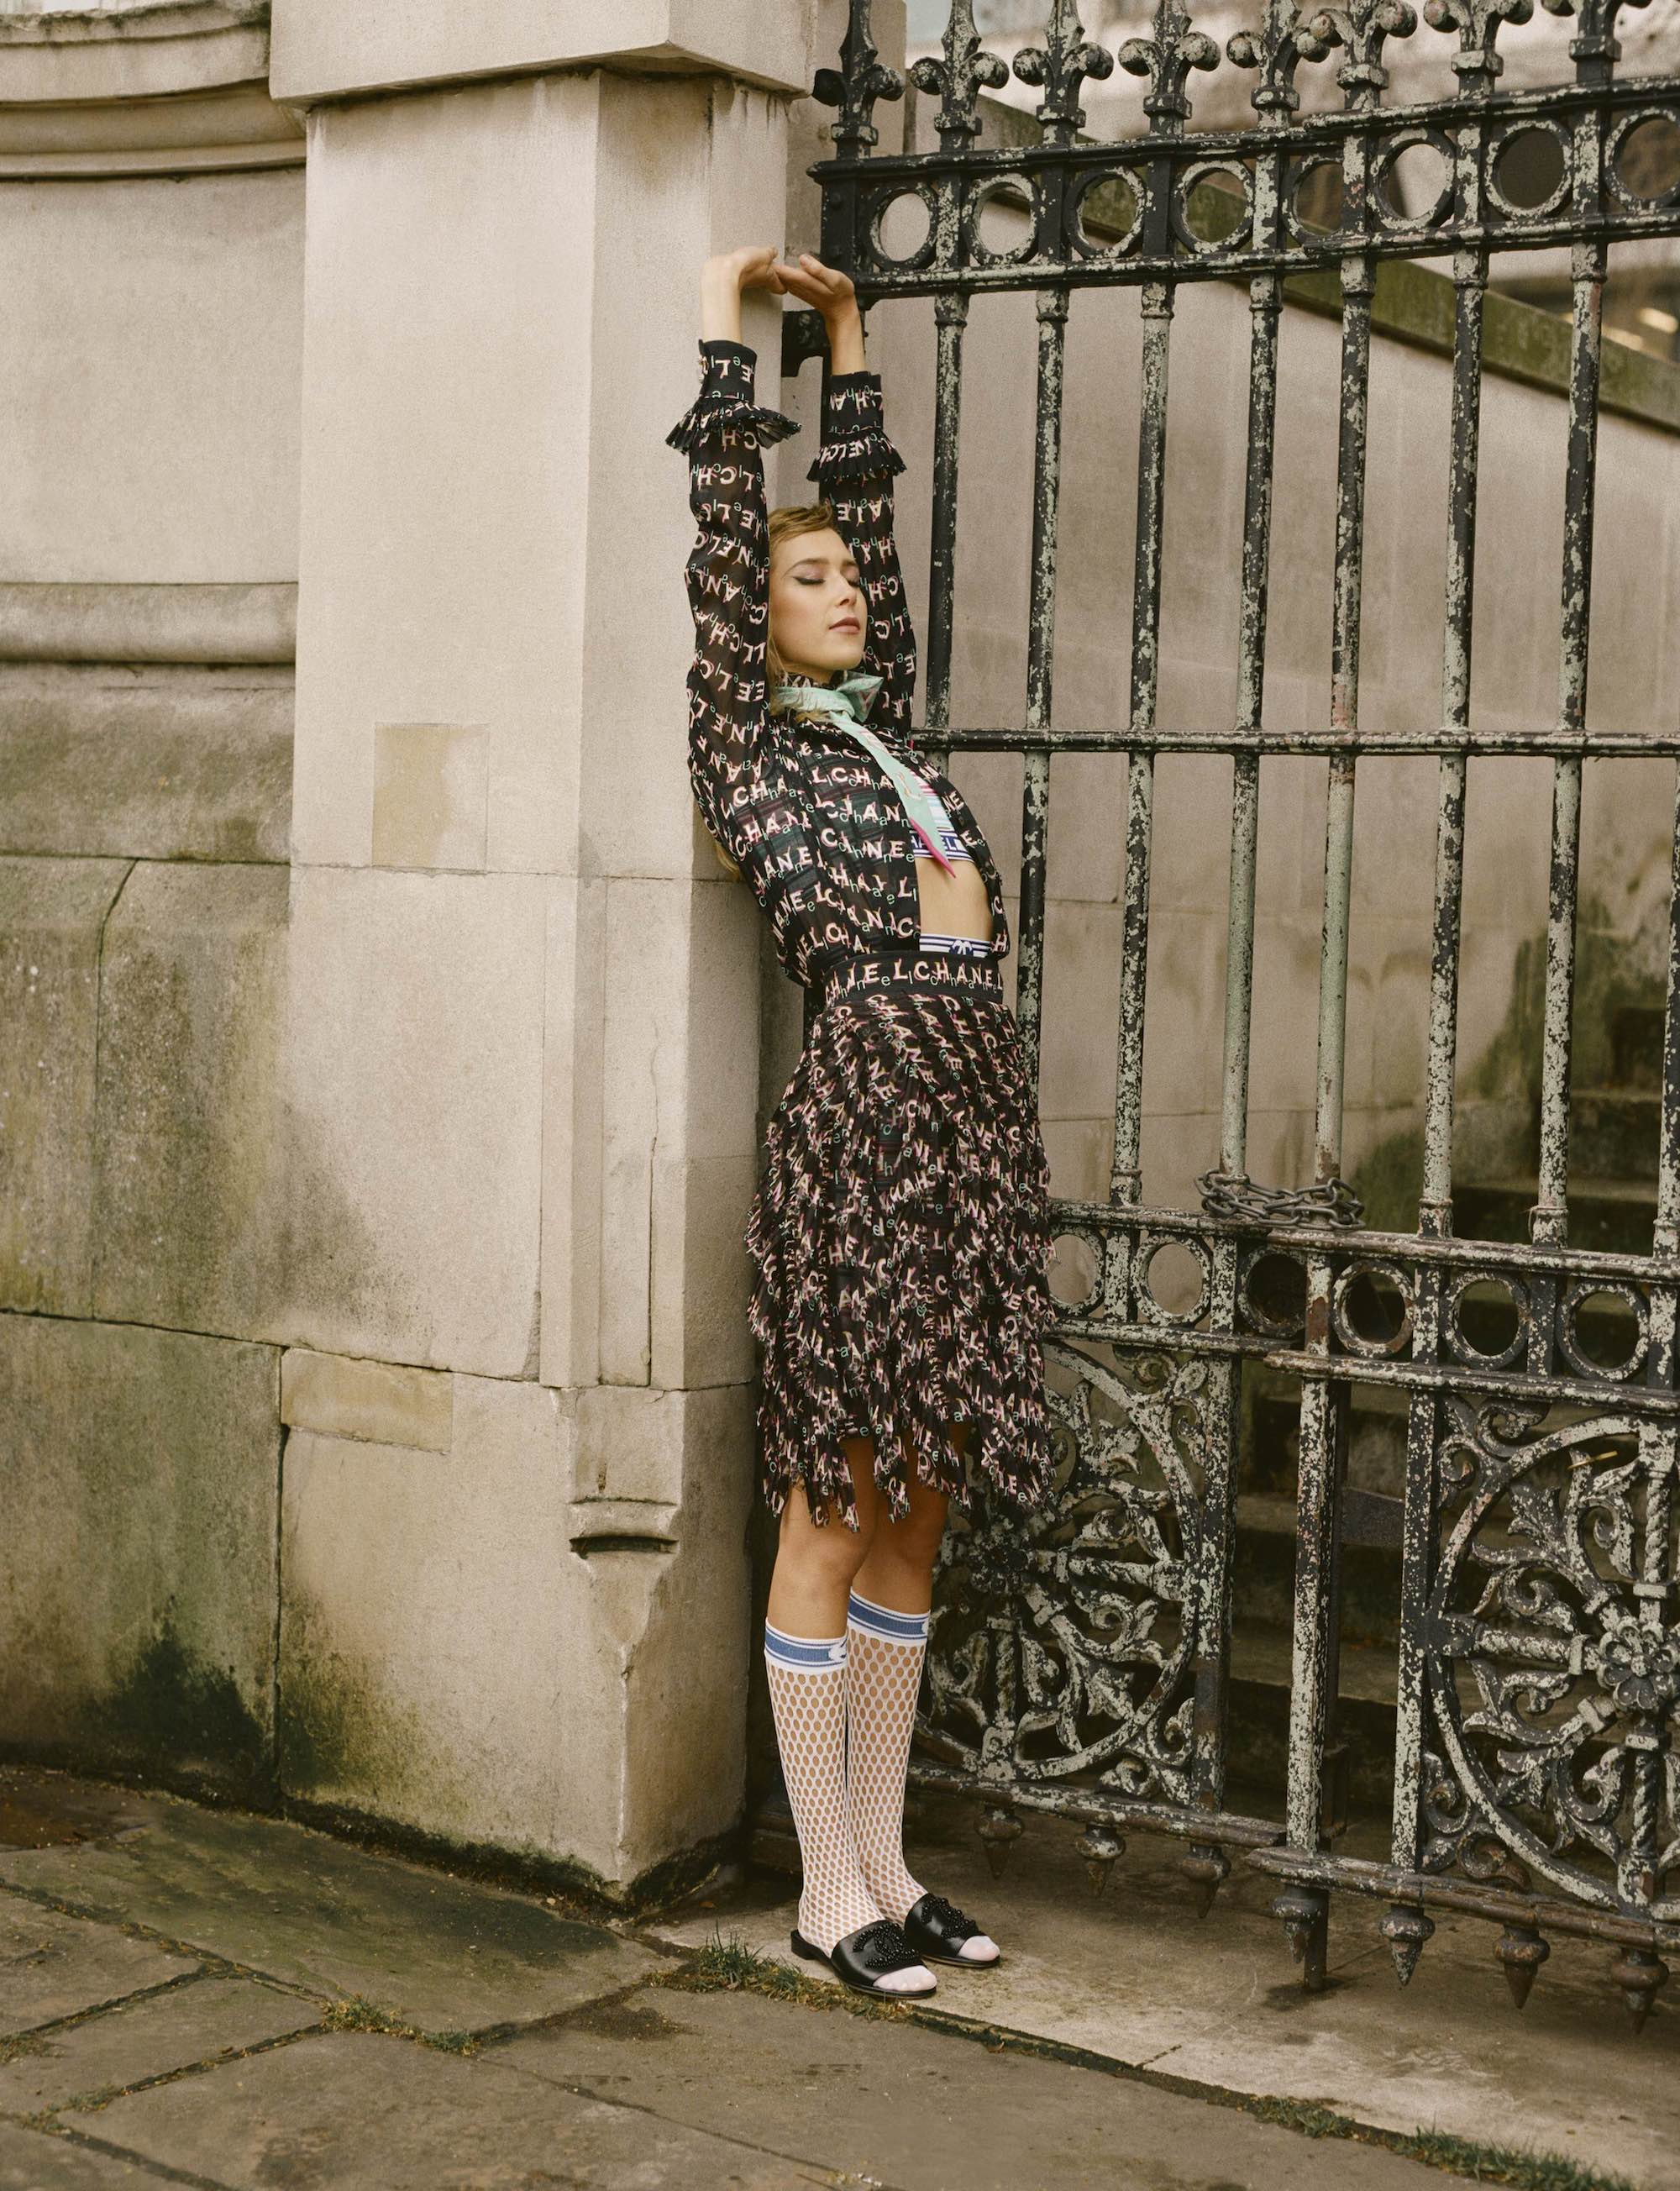 Chanel SS19 fashion editorial in Wonderland Spring 19 issue two-piece